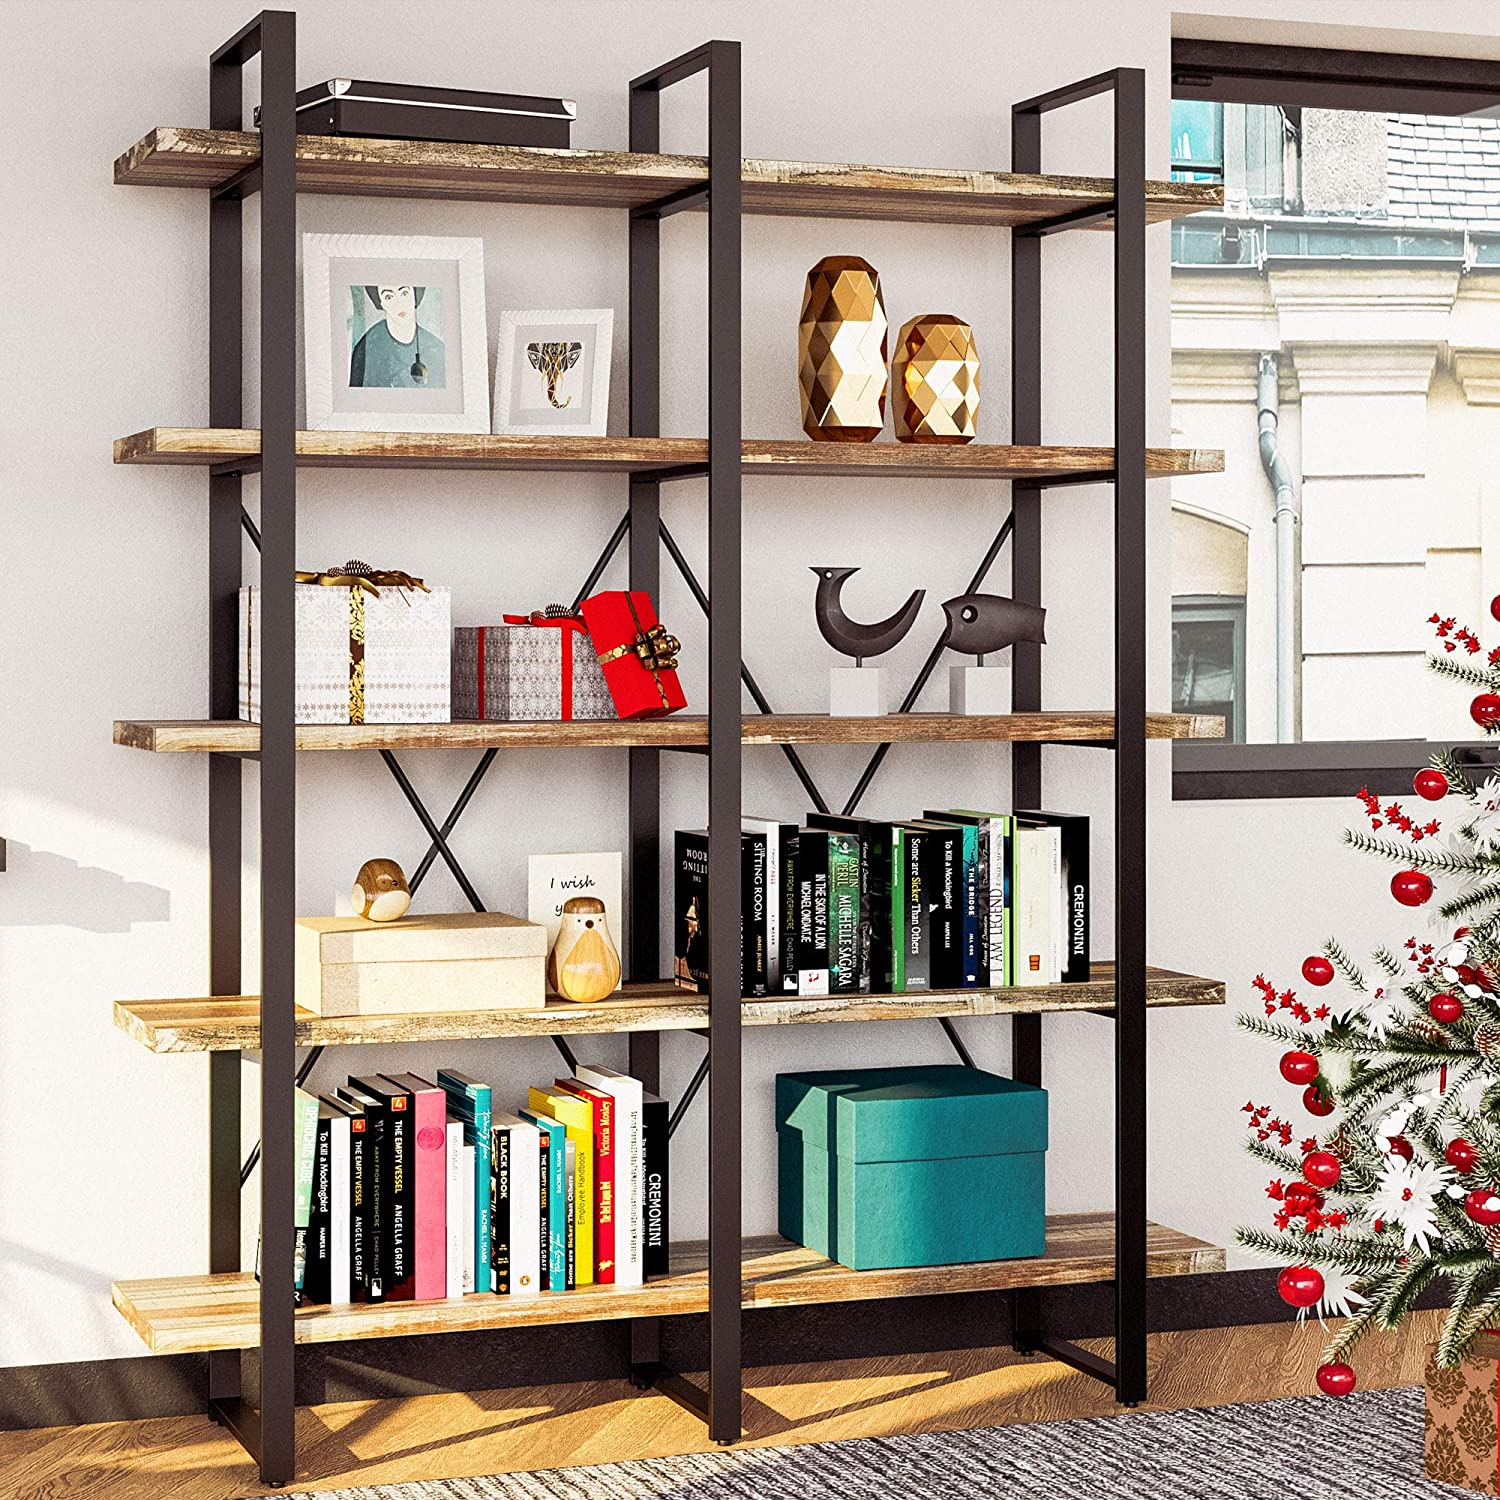 Amazon Com Ironck Bookshelf Double Wide 5 Tier Open Bookcase Vintage Industrial Large Shelves Wood And Metal Etagere Bookshelves For Home Decor Display Office Furniture Furniture Decor